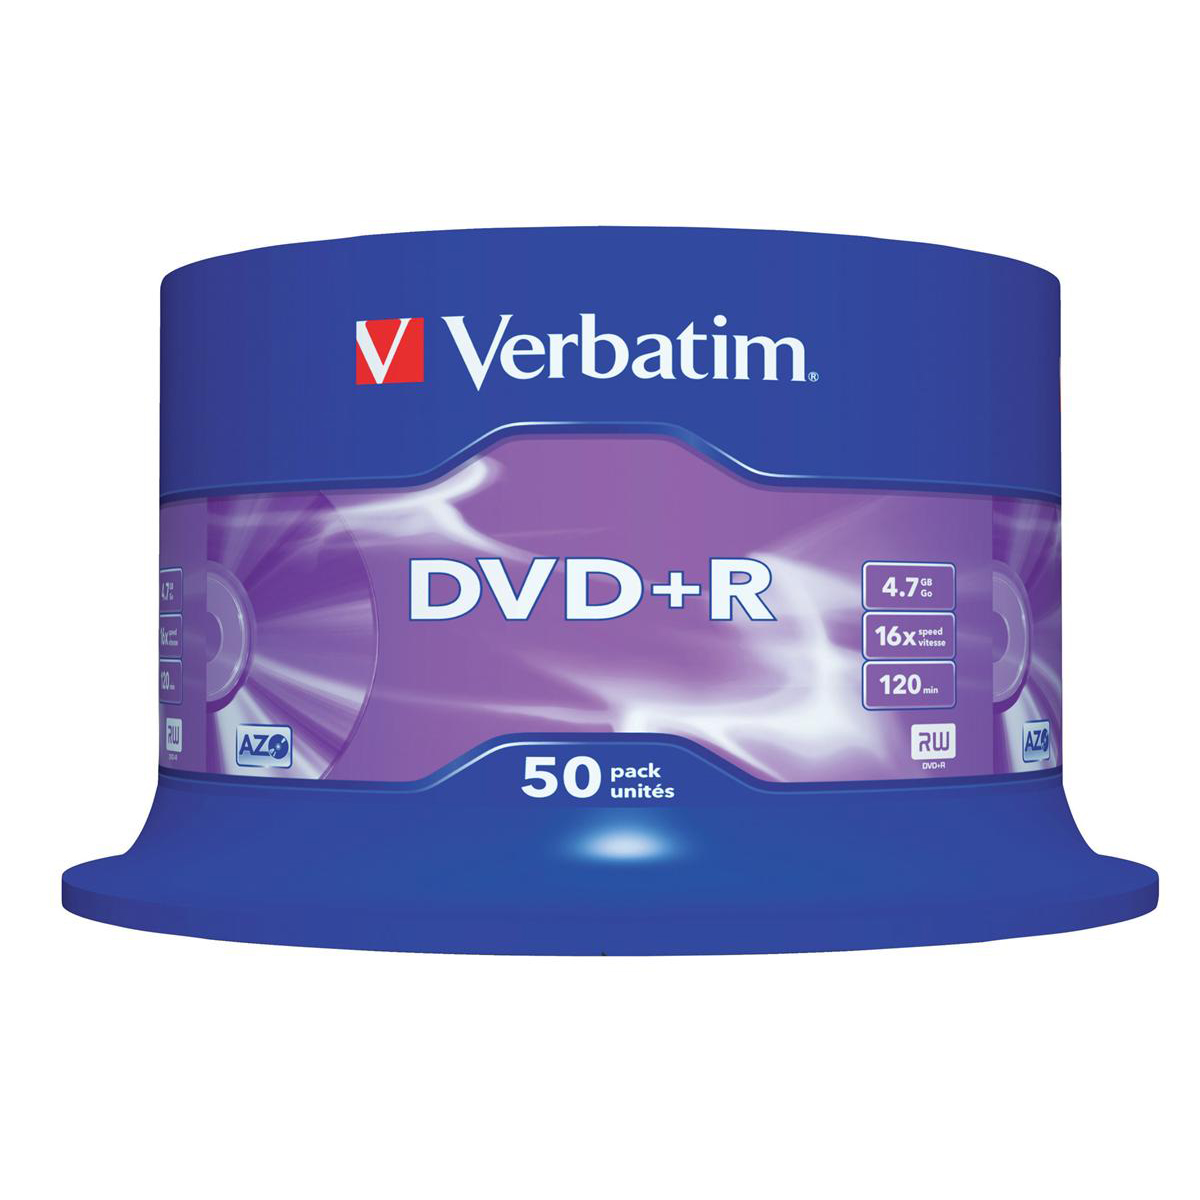 Verbatim DVD+R Recordable Disk Write-once Spindle 16x Speed 120min 4.7Gb Ref 43550 [Pack 50]